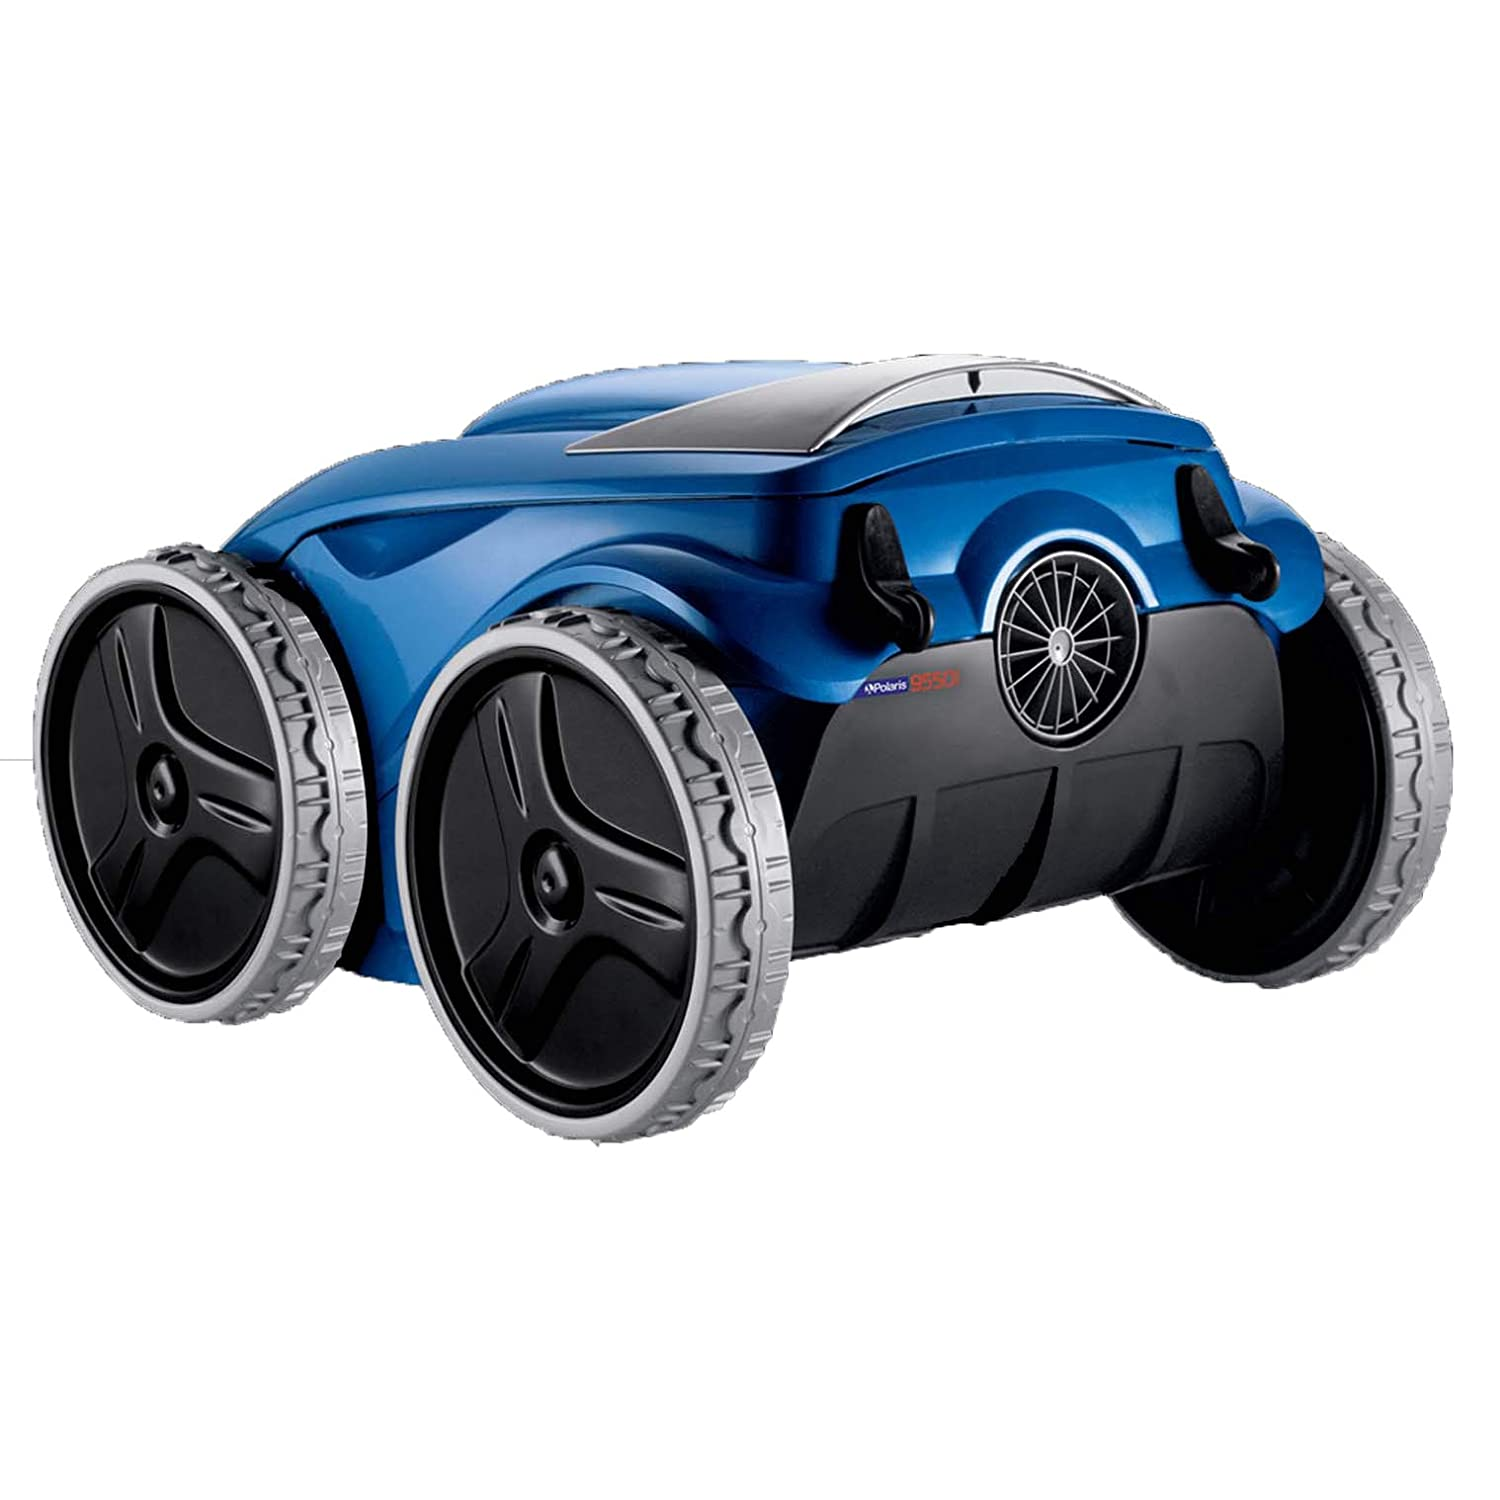 Polaris F9550 Sport Robotic In-Ground Pool Cleaner Reviews